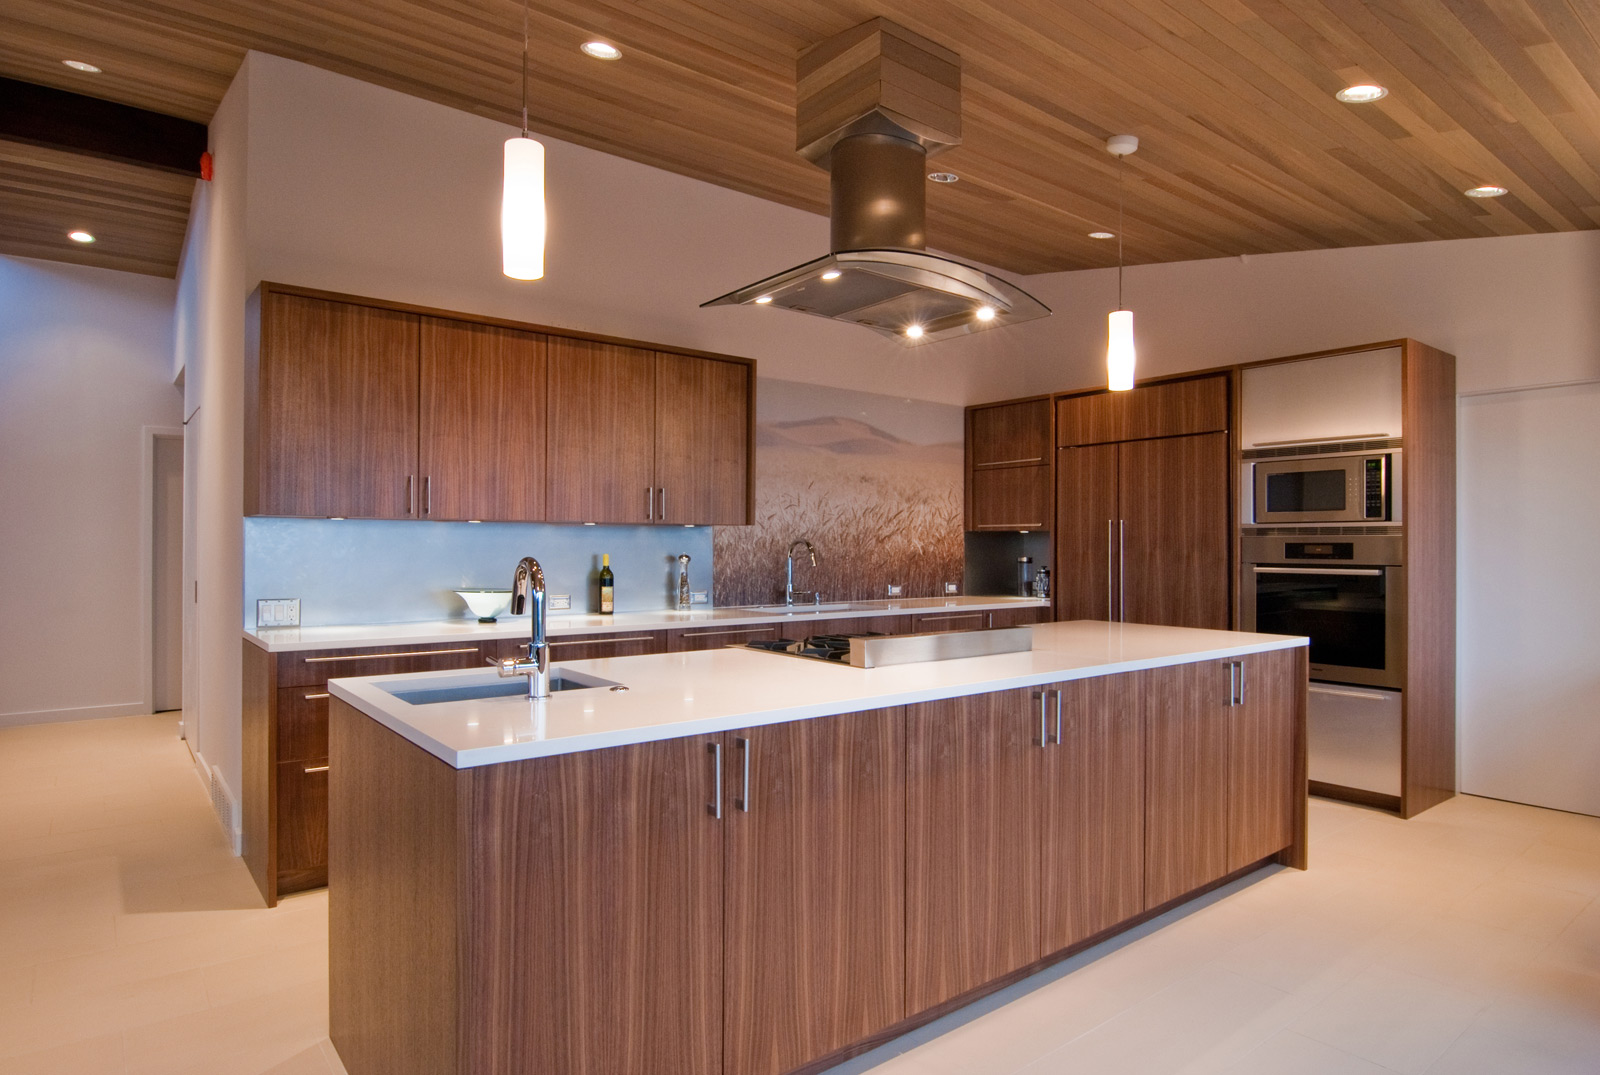 5 modern kitchen designs principles walnut kitchen cabinets BUILD LLC West Seattle Kitchen 2